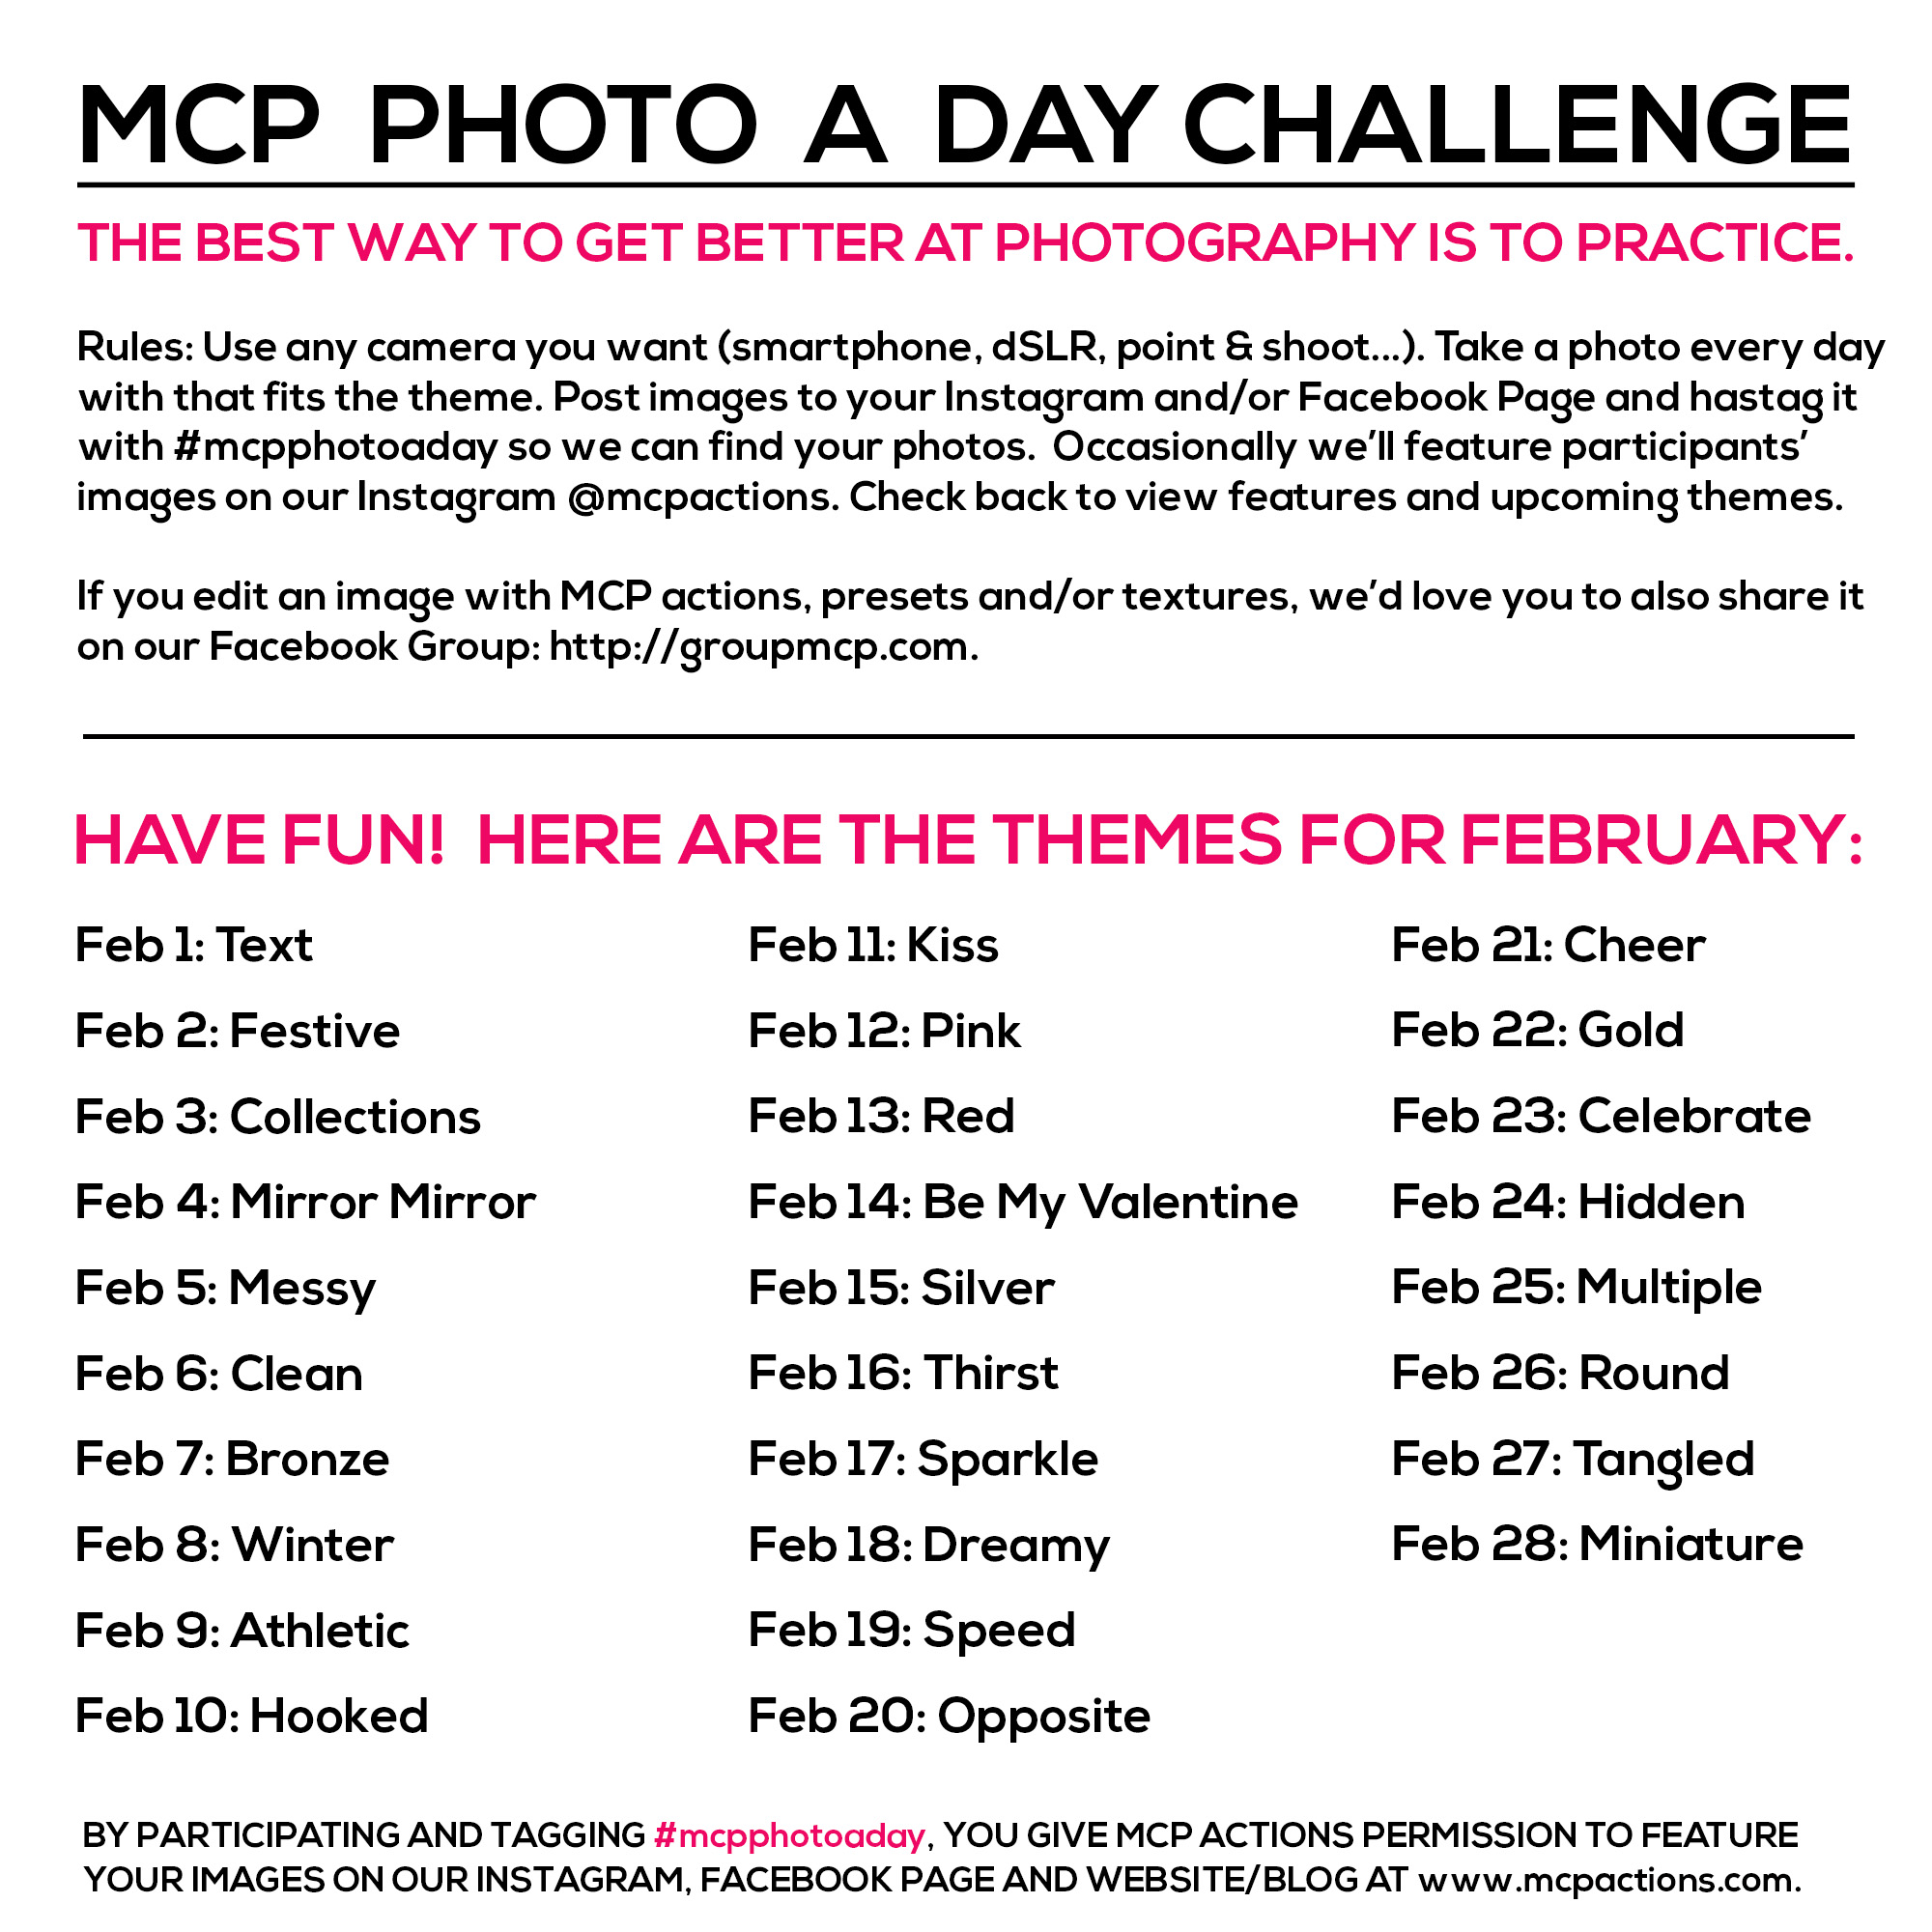 mcpphotoaday-Feb MCP Photo A Day Challenge: February Themes Activities Announcements Assignments